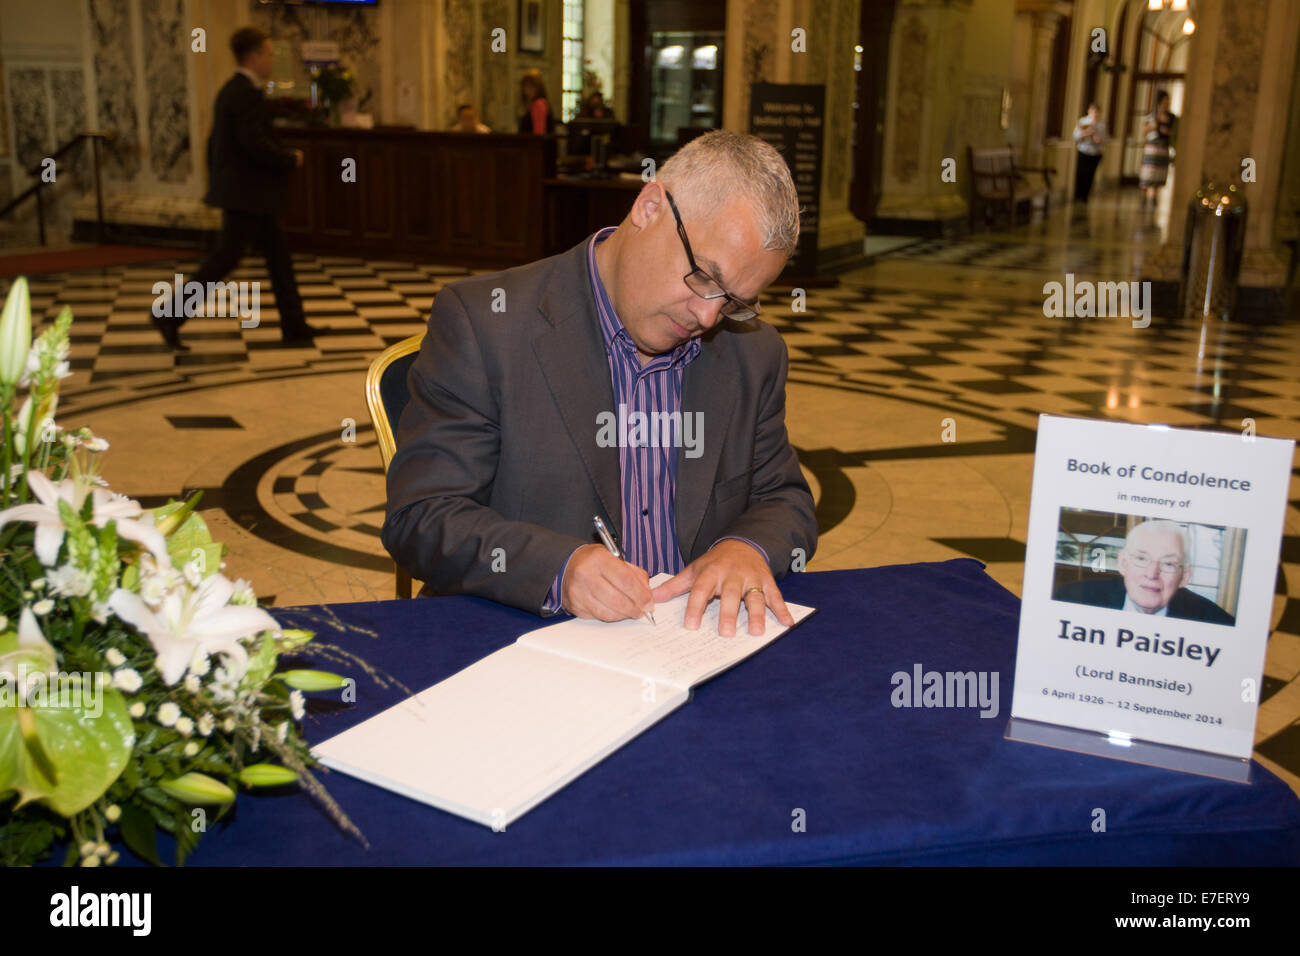 Belfast, Ireland. 15th Sept, 2014 Councilor Tim Attwood signs the Ian Paisley Book of Condolence Credit:  Bonzo/Alamy - Stock Image